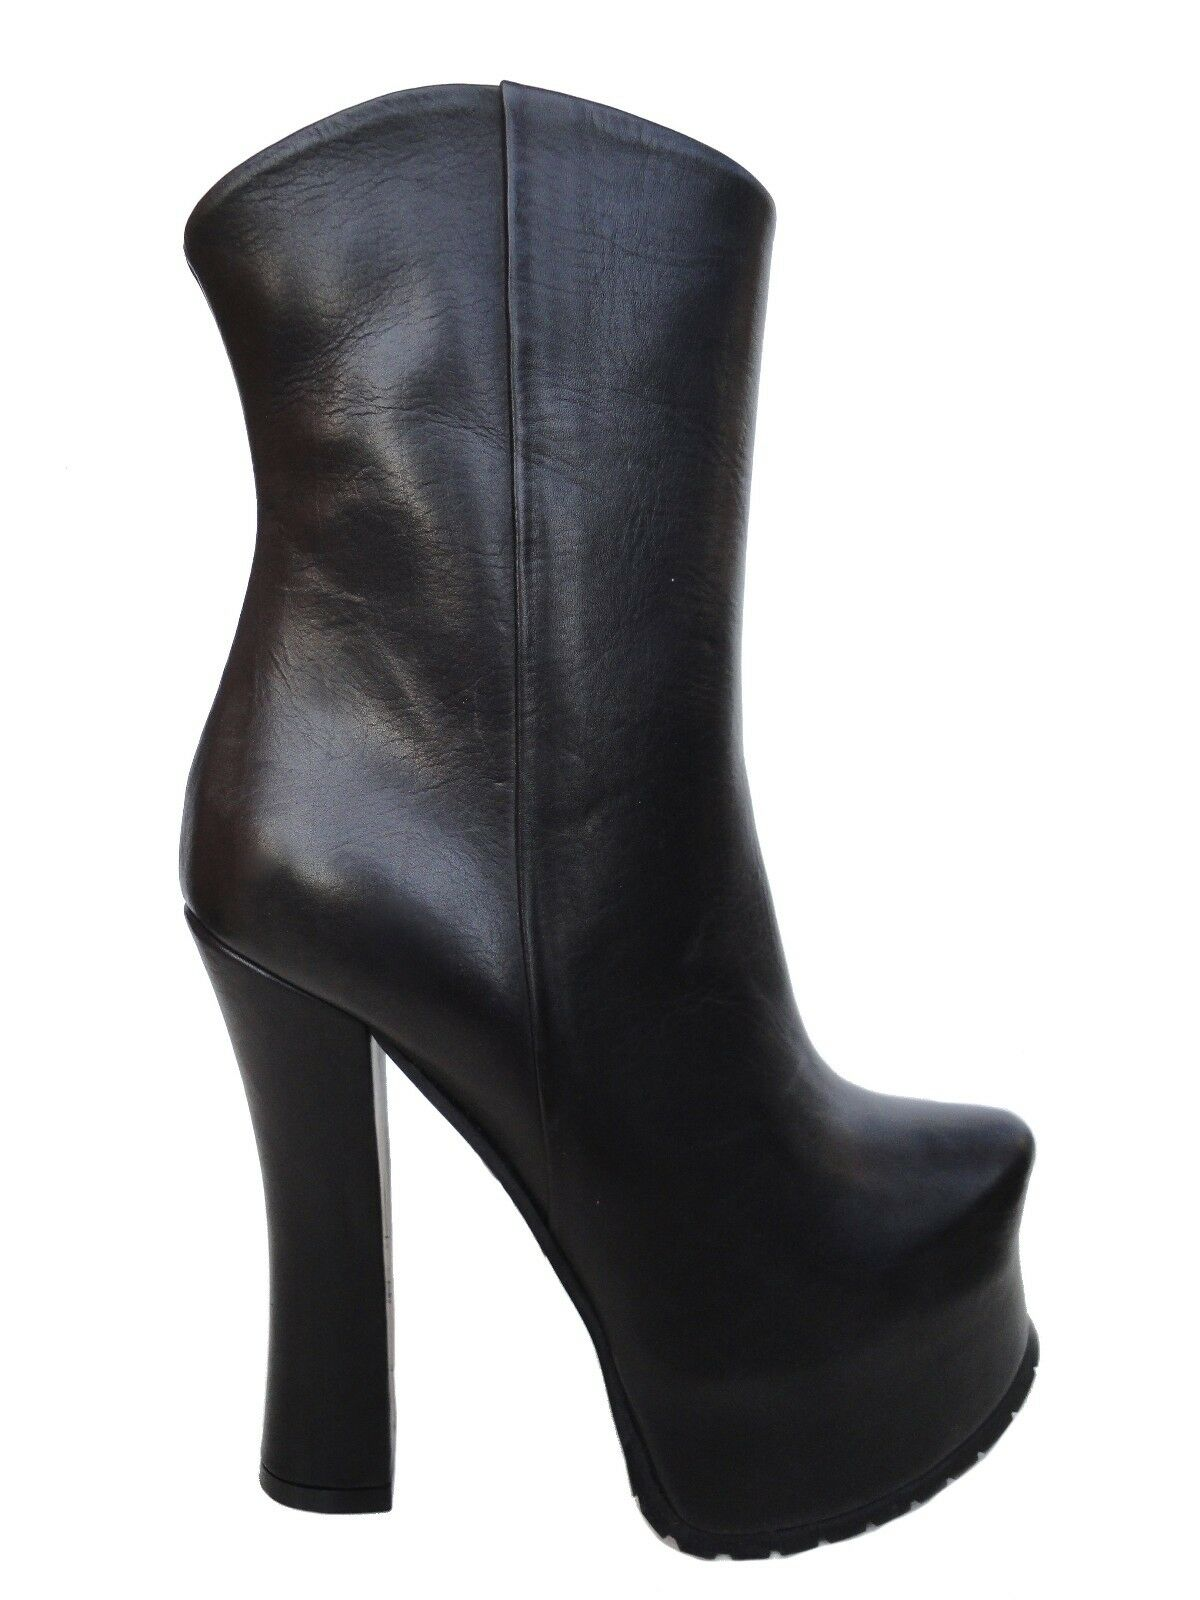 CQ CQ CQ COUTURE MADE TO ORDER PLATFORM BOOTS STIEFEL BOOTS LEATHER BLACK BLACK 39 30cd40